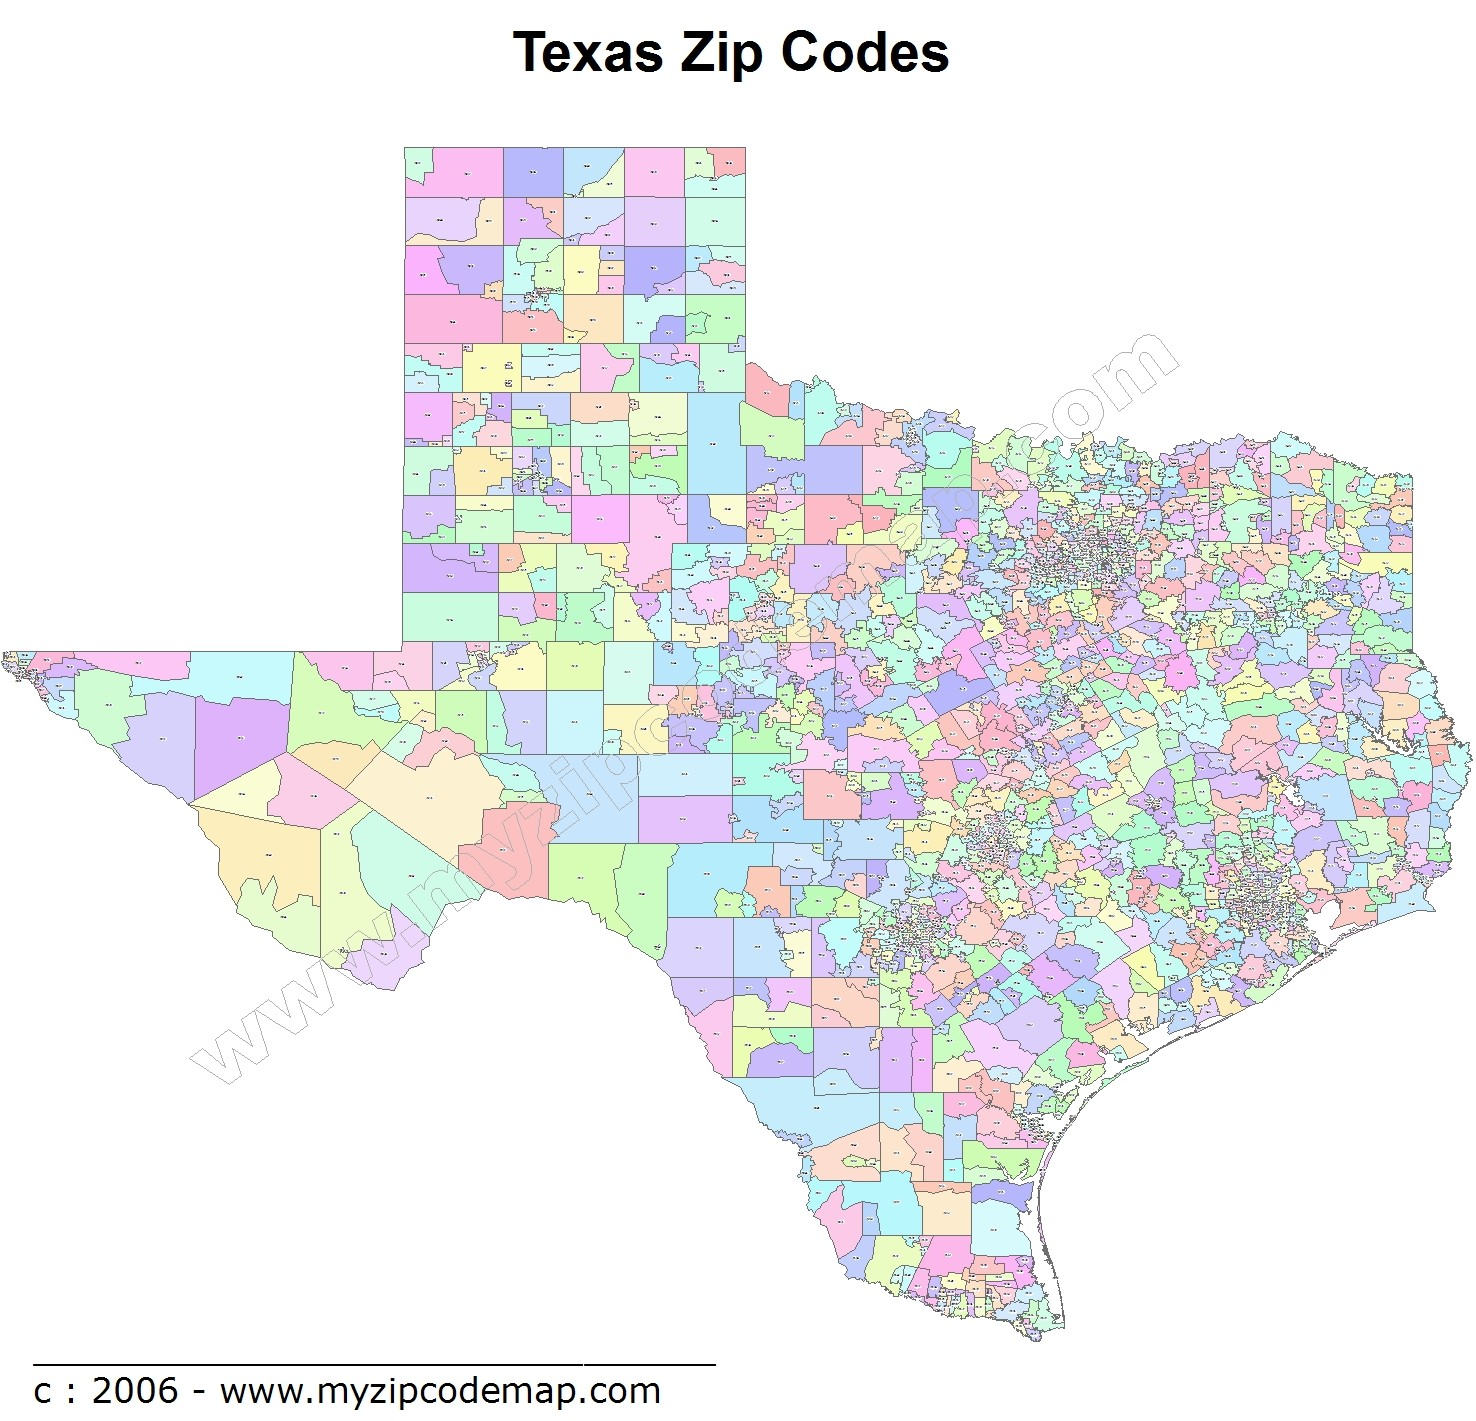 Texas Zip Code Maps - Free Texas Zip Code Maps